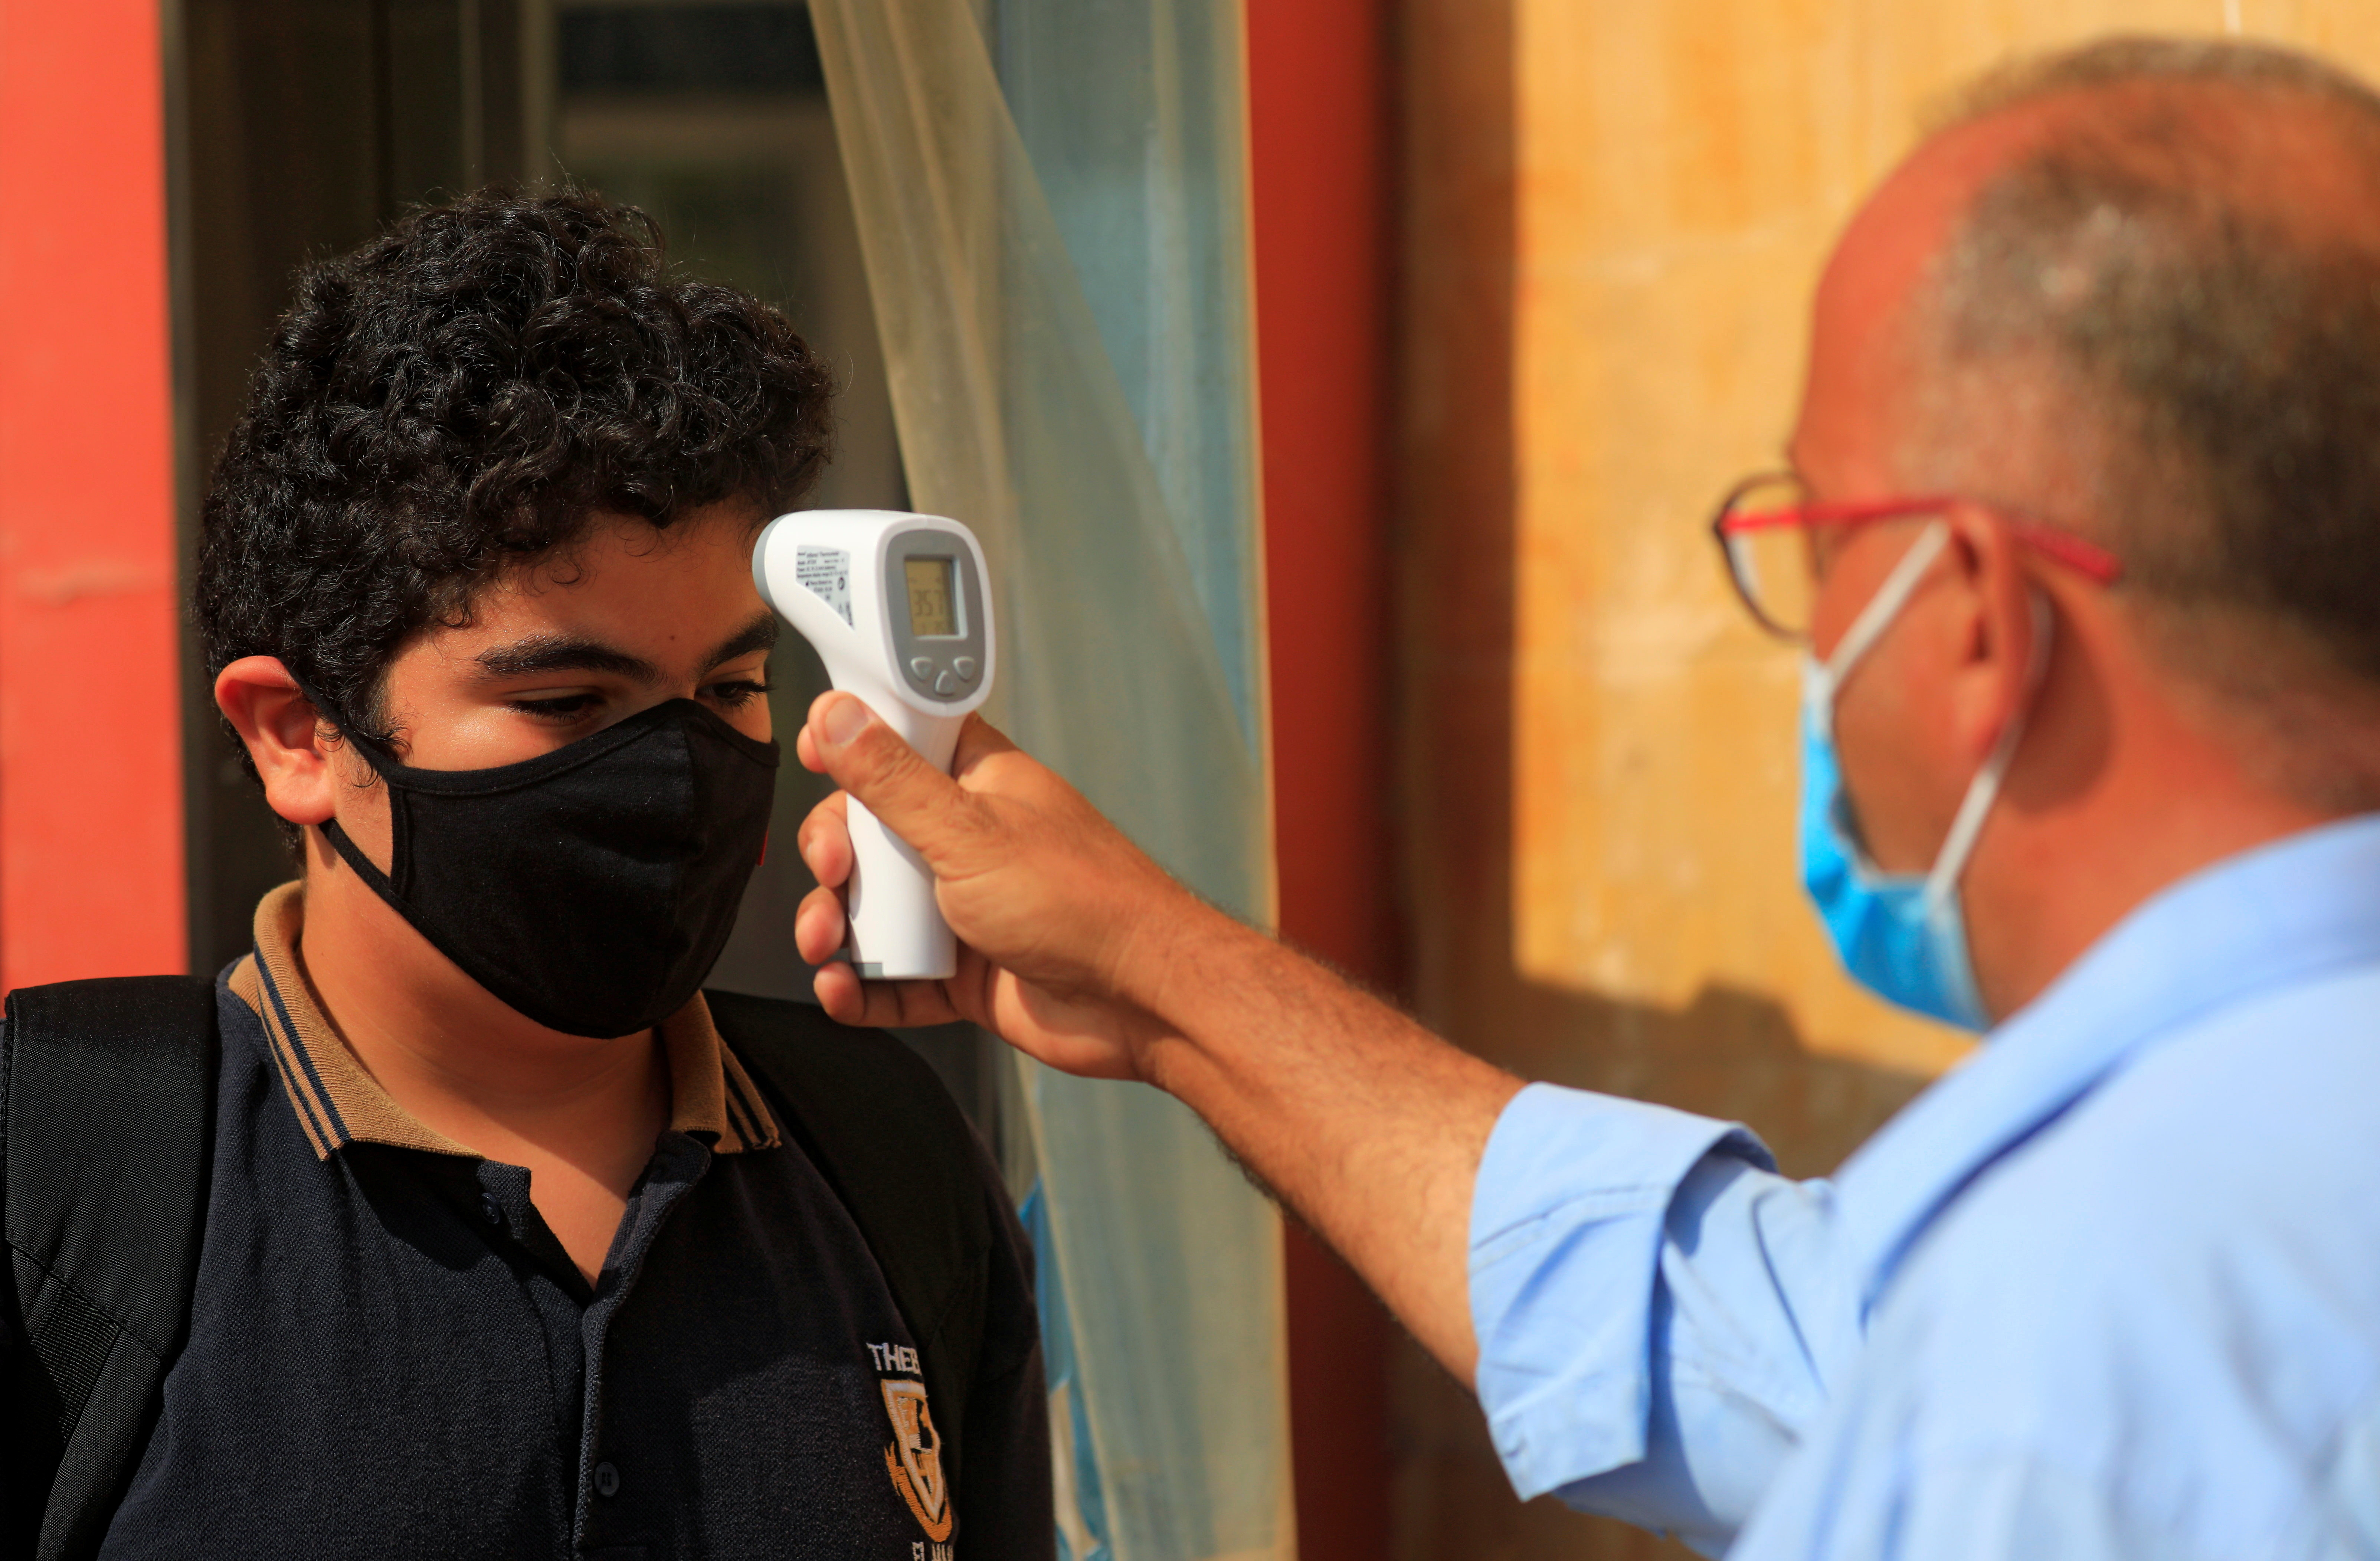 A student wearing a protective face mask has his temperature checked before entering the Tiba Maadi School, following months of closure due to the coronavirus disease (COVID-19) outbreak, in the Cairo suburb of Maadi, Egypt November 1, 2020. REUTERS/Amr Abdallah Dalsh - RC2DUJ9HFF3P